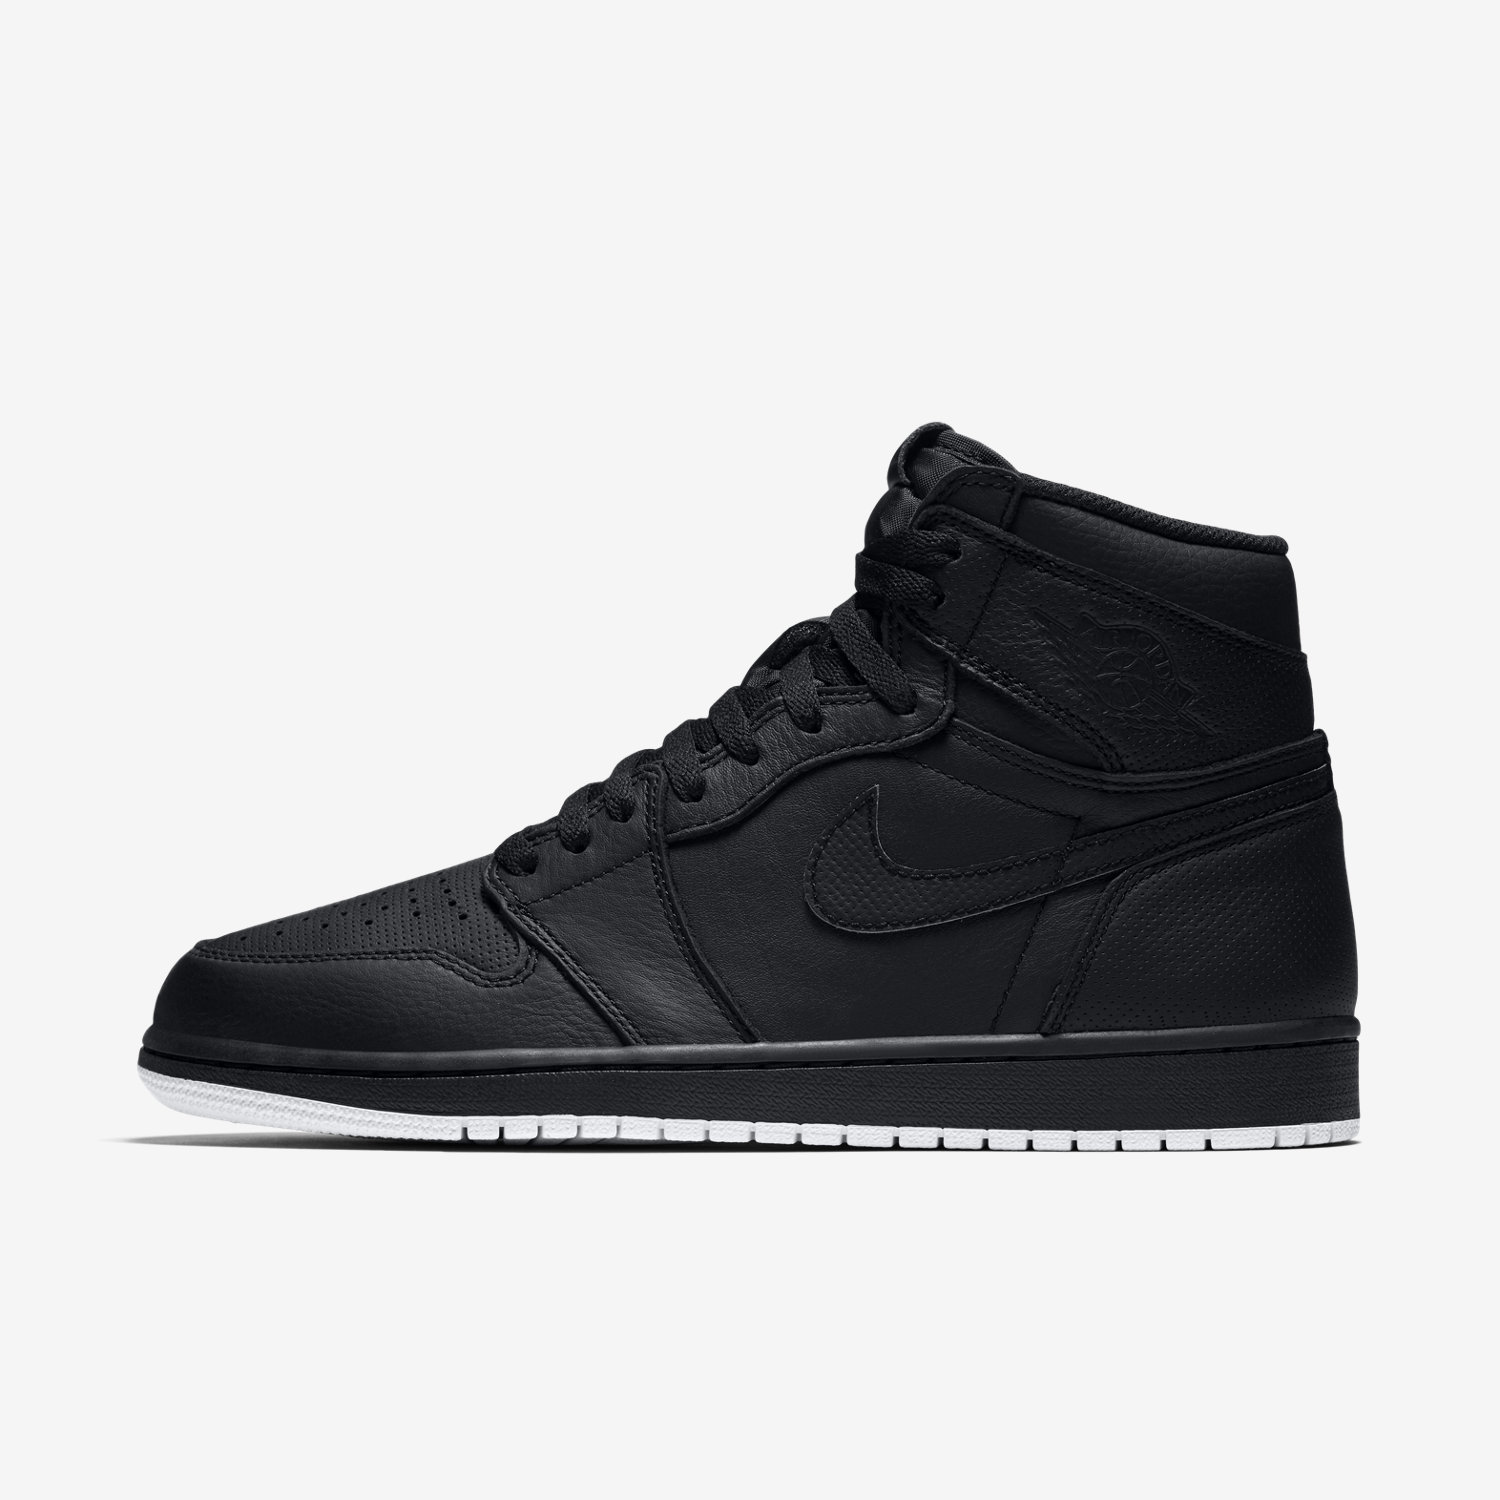 nike air jordan air jordan 1 retro high og menu0027s shoe. nike.com UIEIXAK